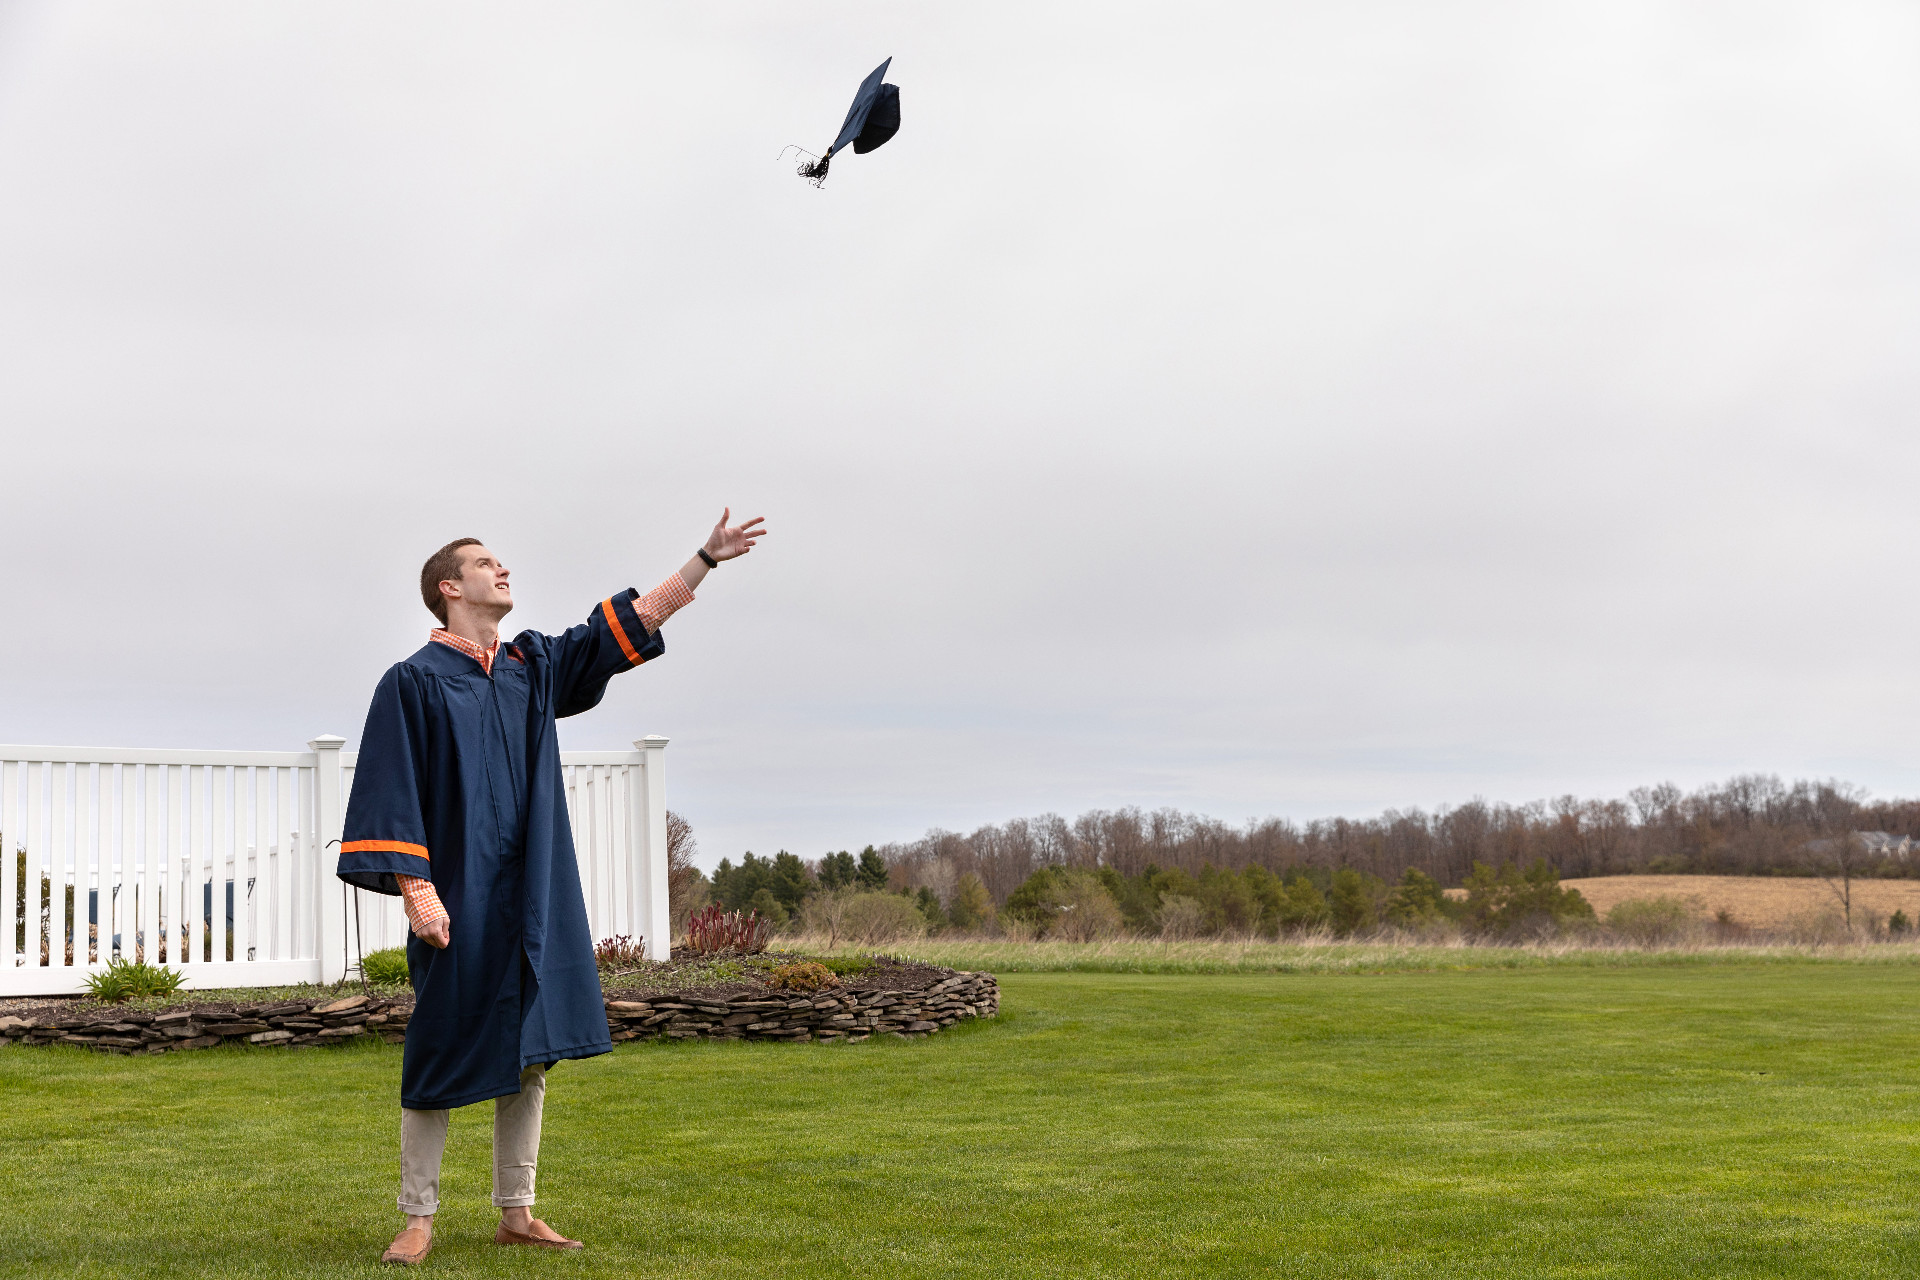 person throwing graduation cap in air